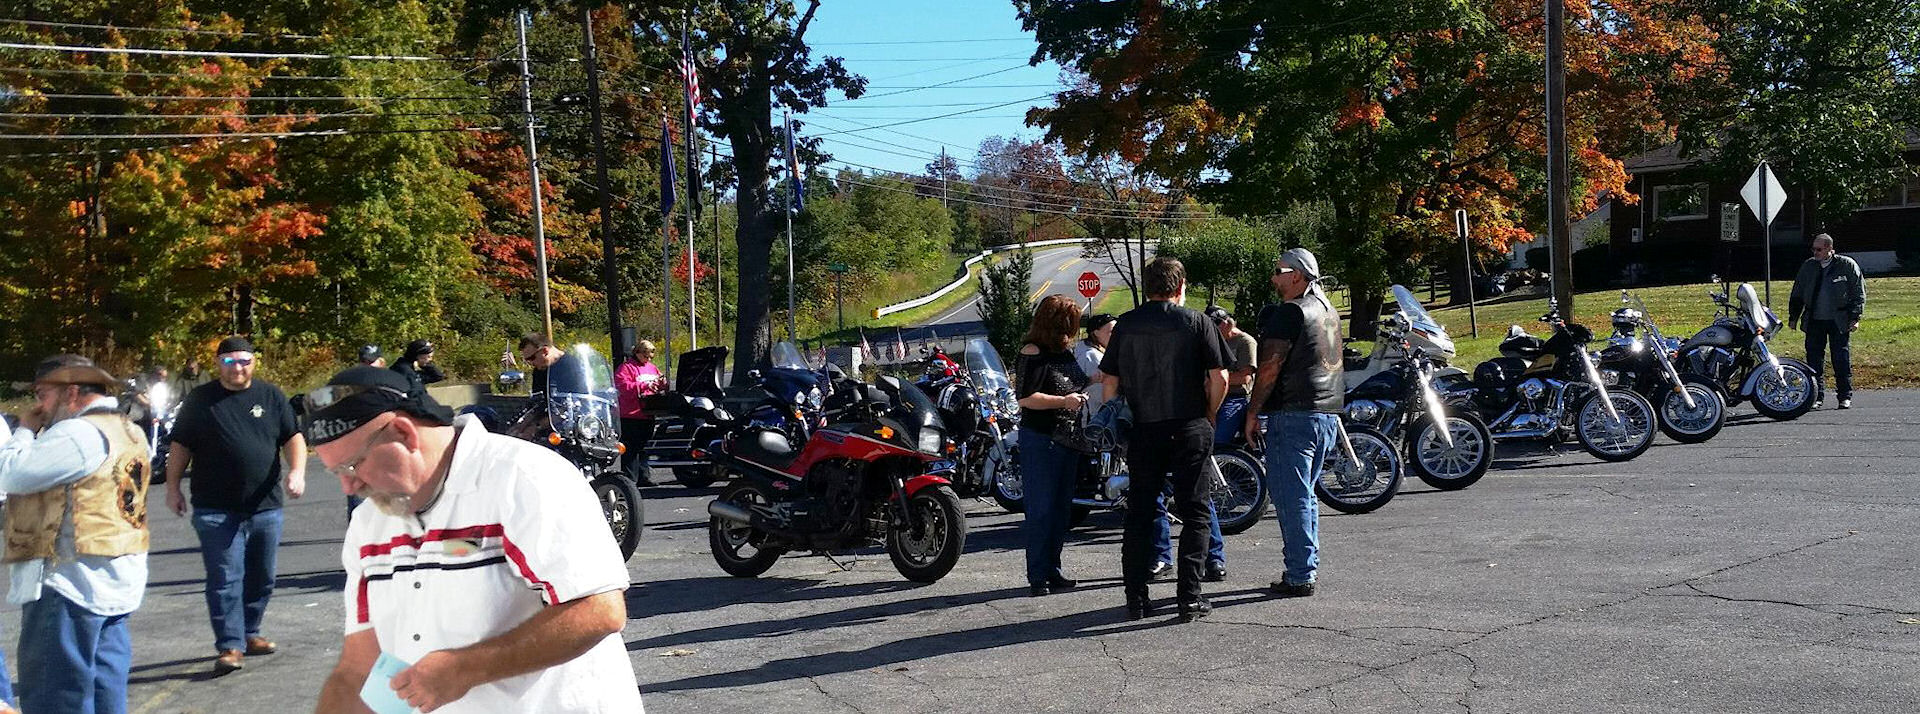 Annual Poker Run & Motorcycle Rally